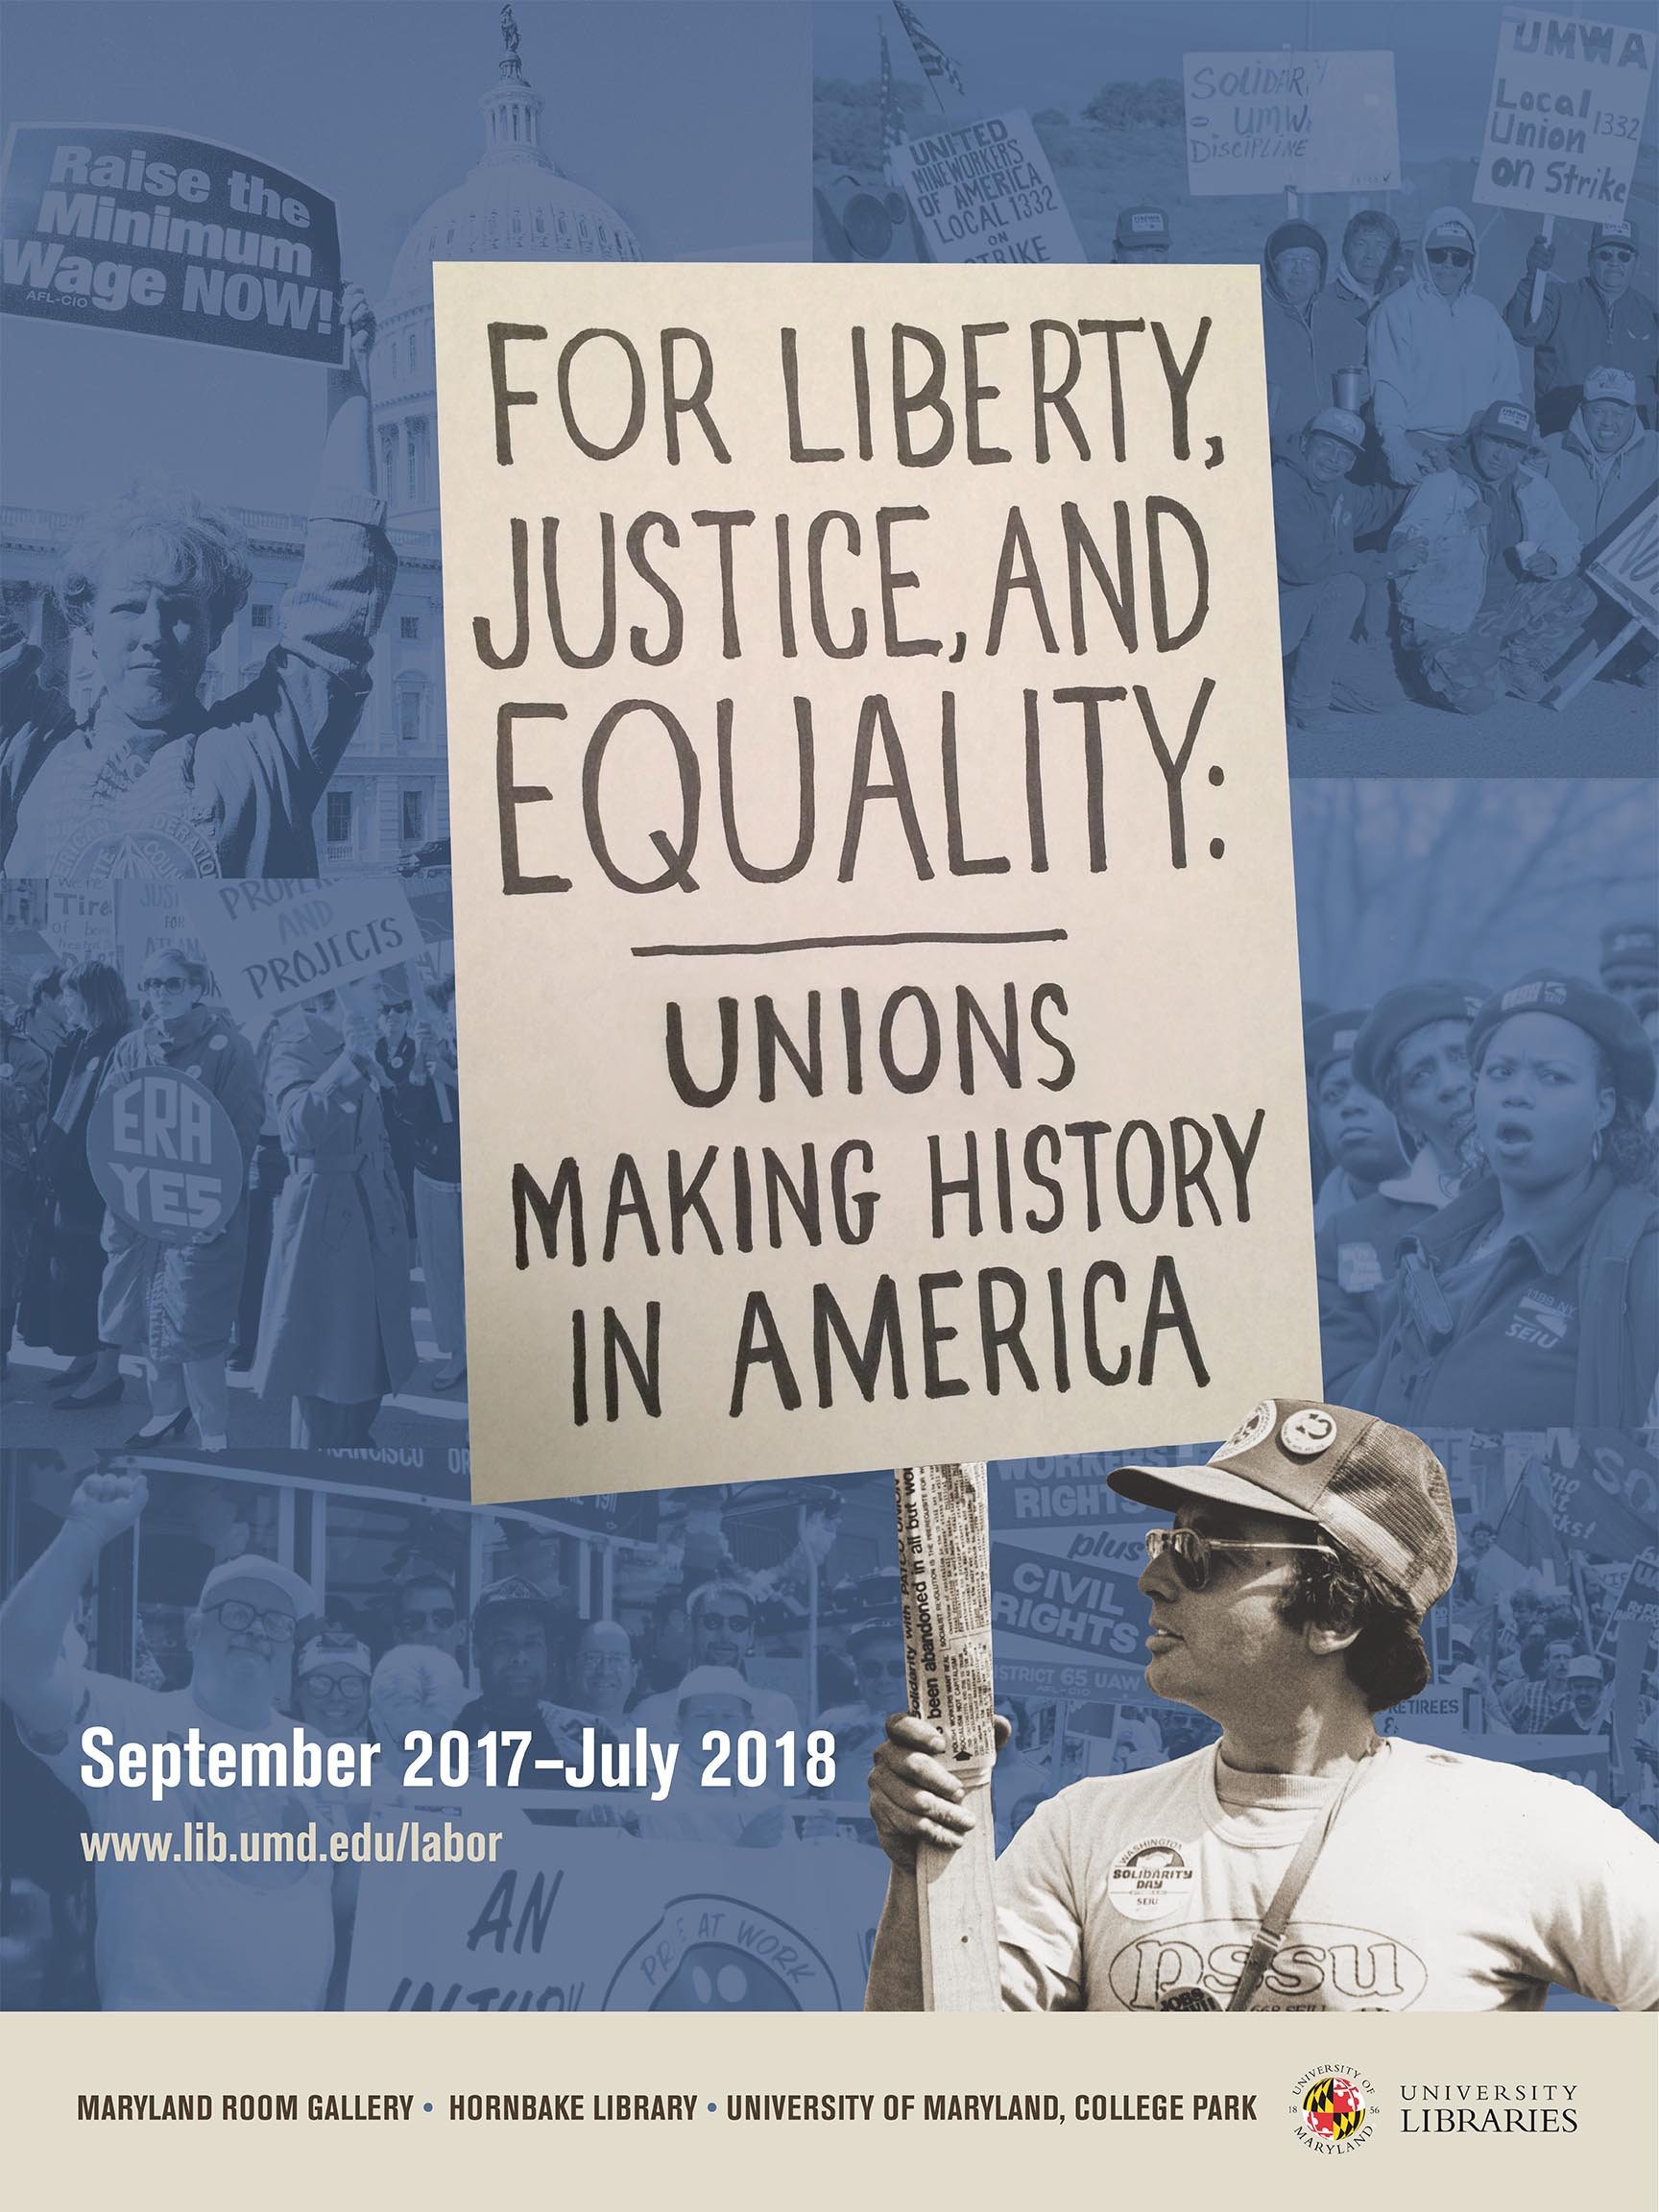 For Liberty, Justice, and Equality: Unions Making History in America